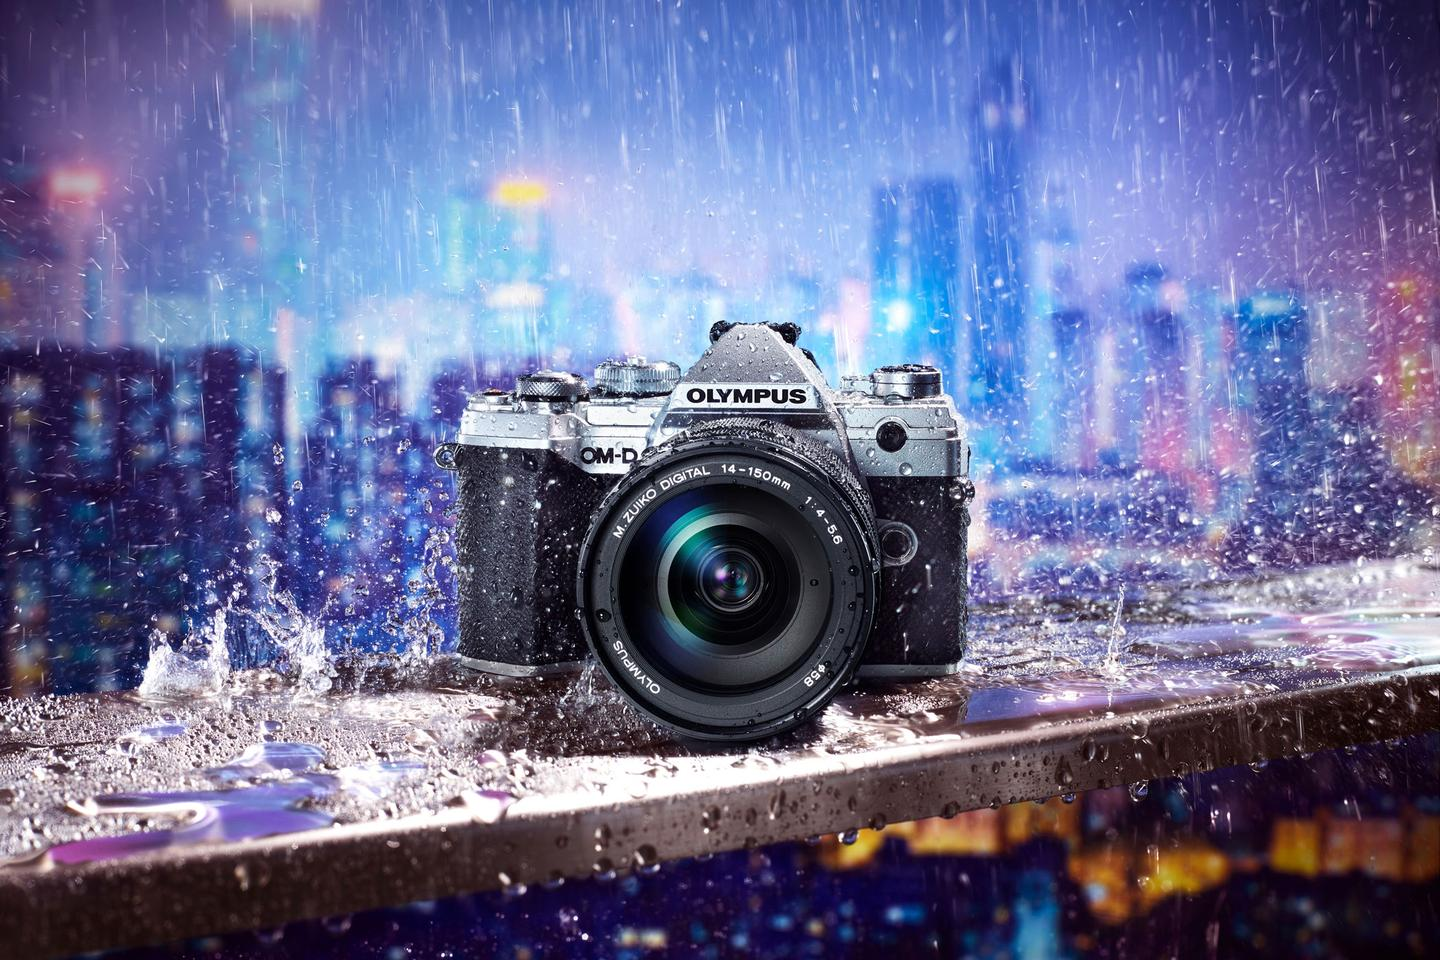 The compact OM-D E-M5 Mark III shares much of its technology with the Olympus E-M1 Mark II flagship